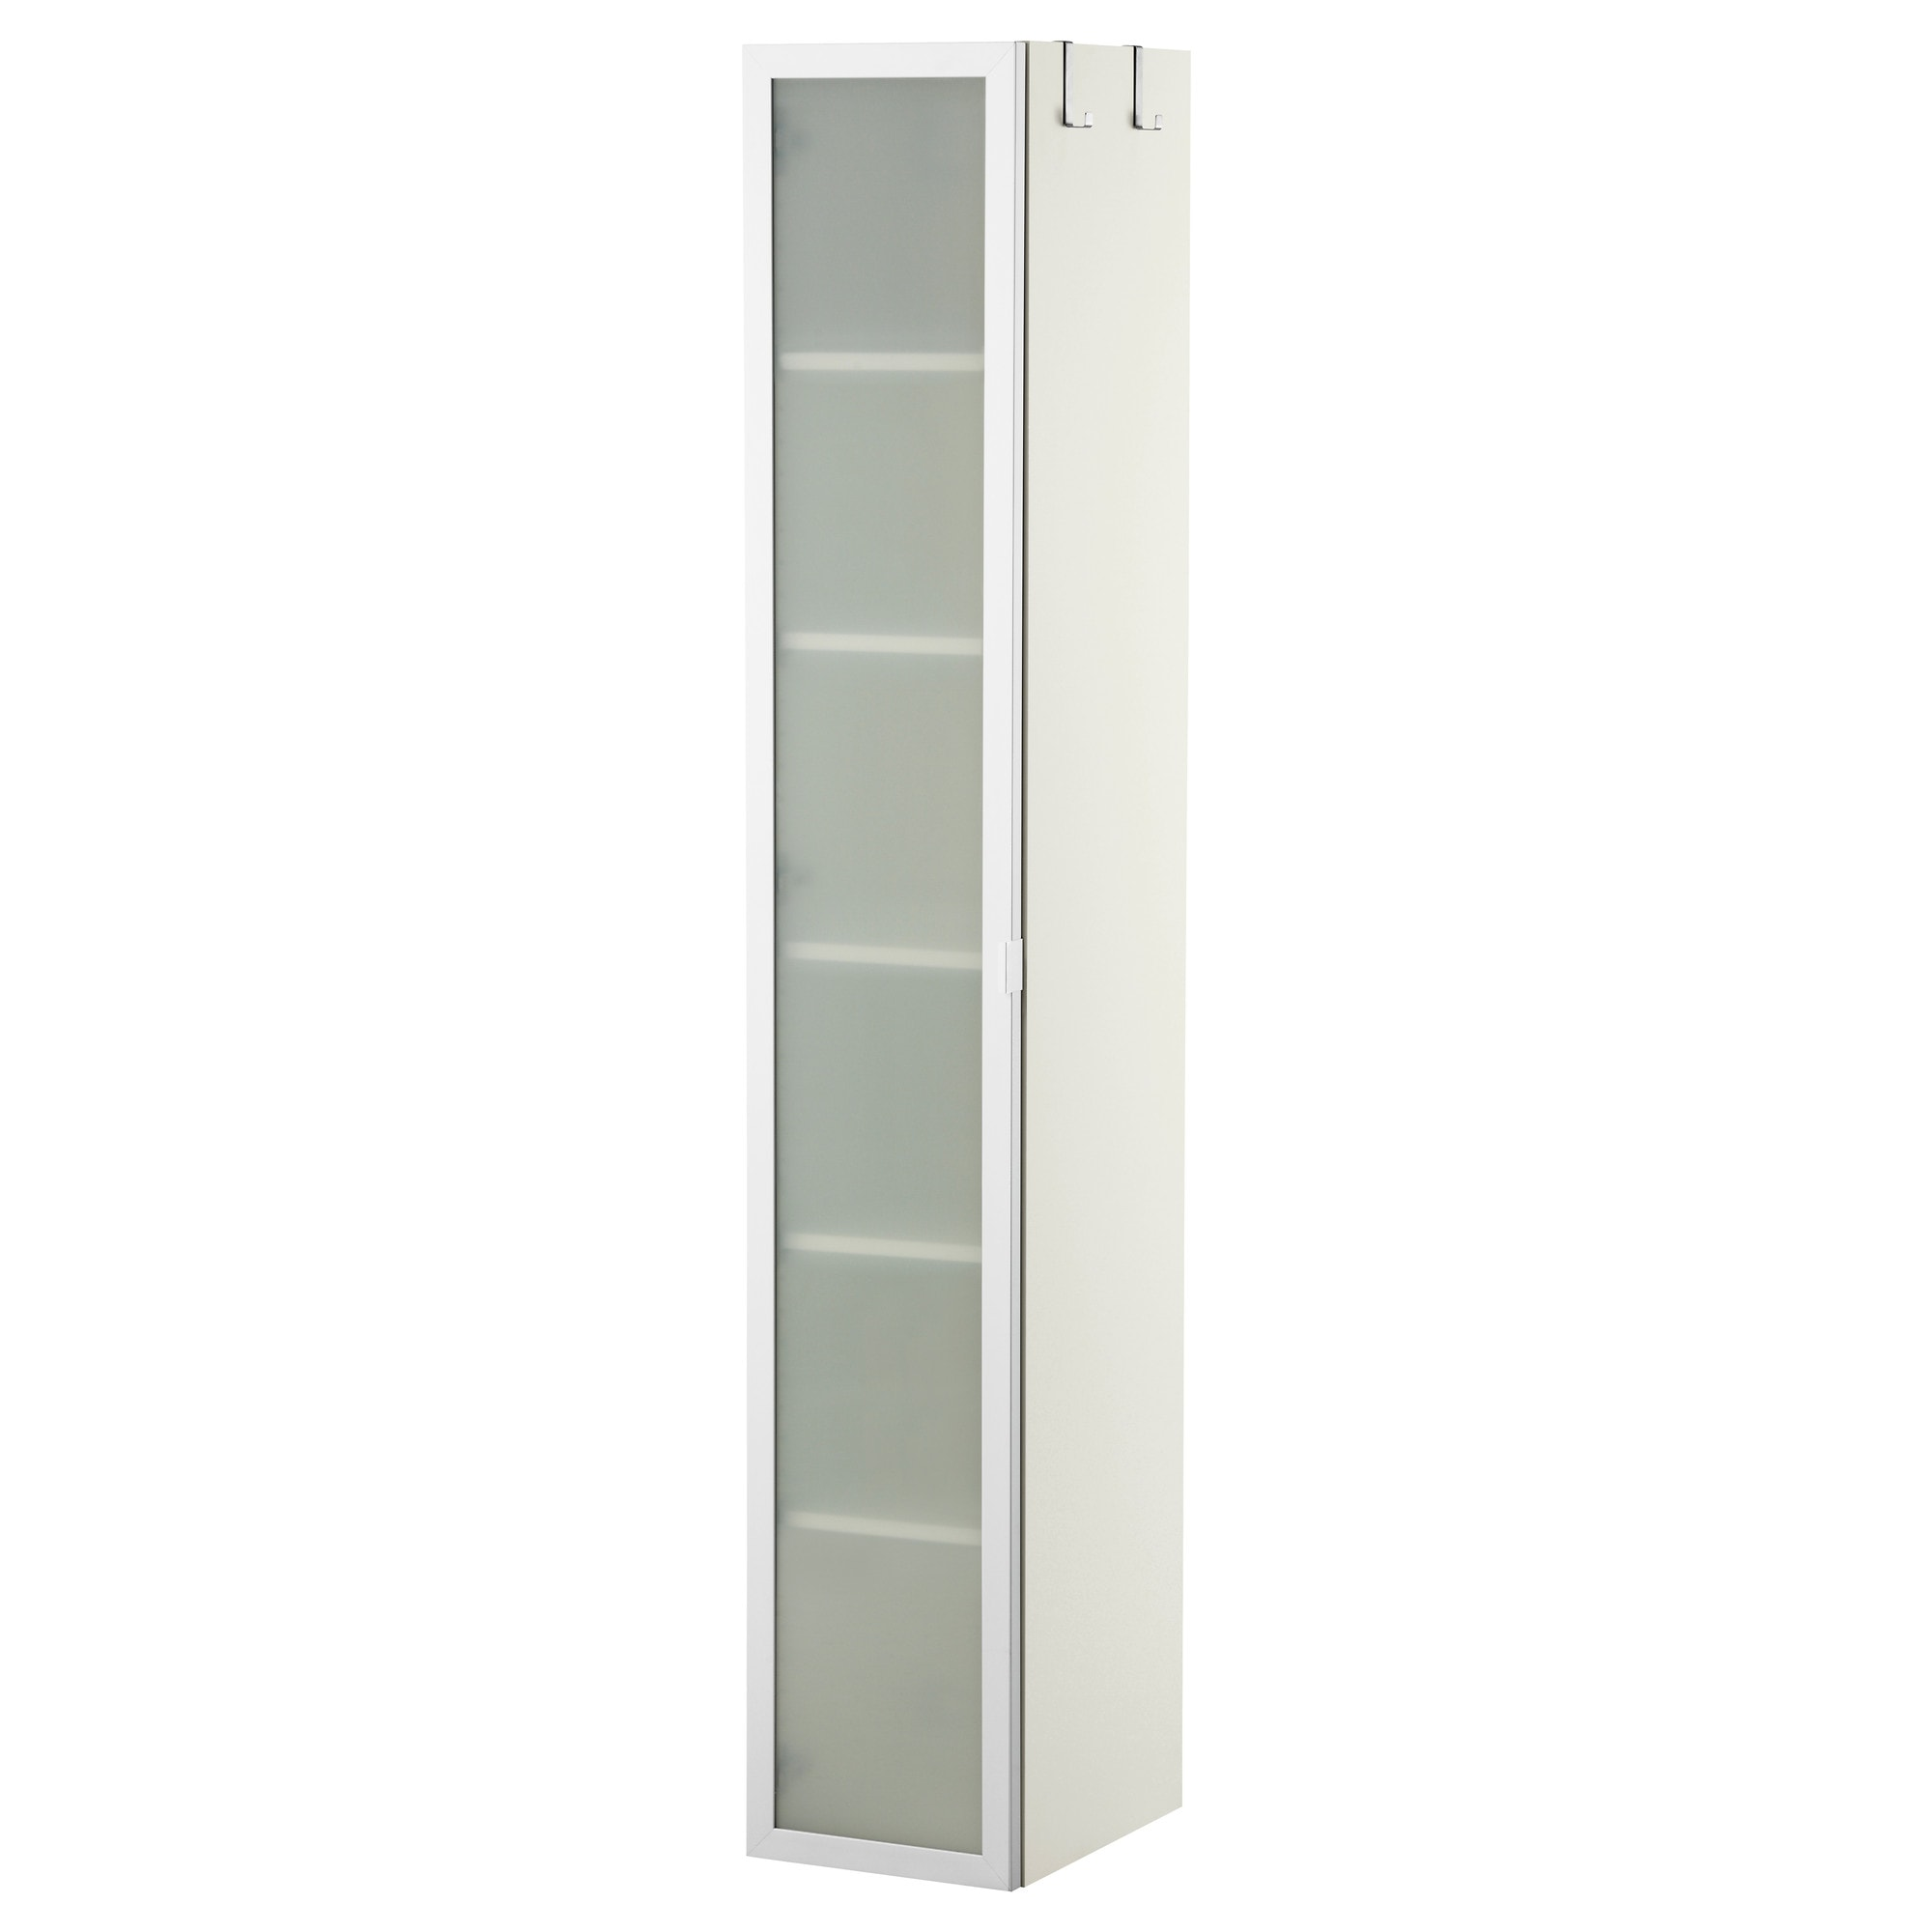 Tall bathroom storage cabinets - Lill Ngen High Cabinet White Aluminum Width 11 3 4 Depth